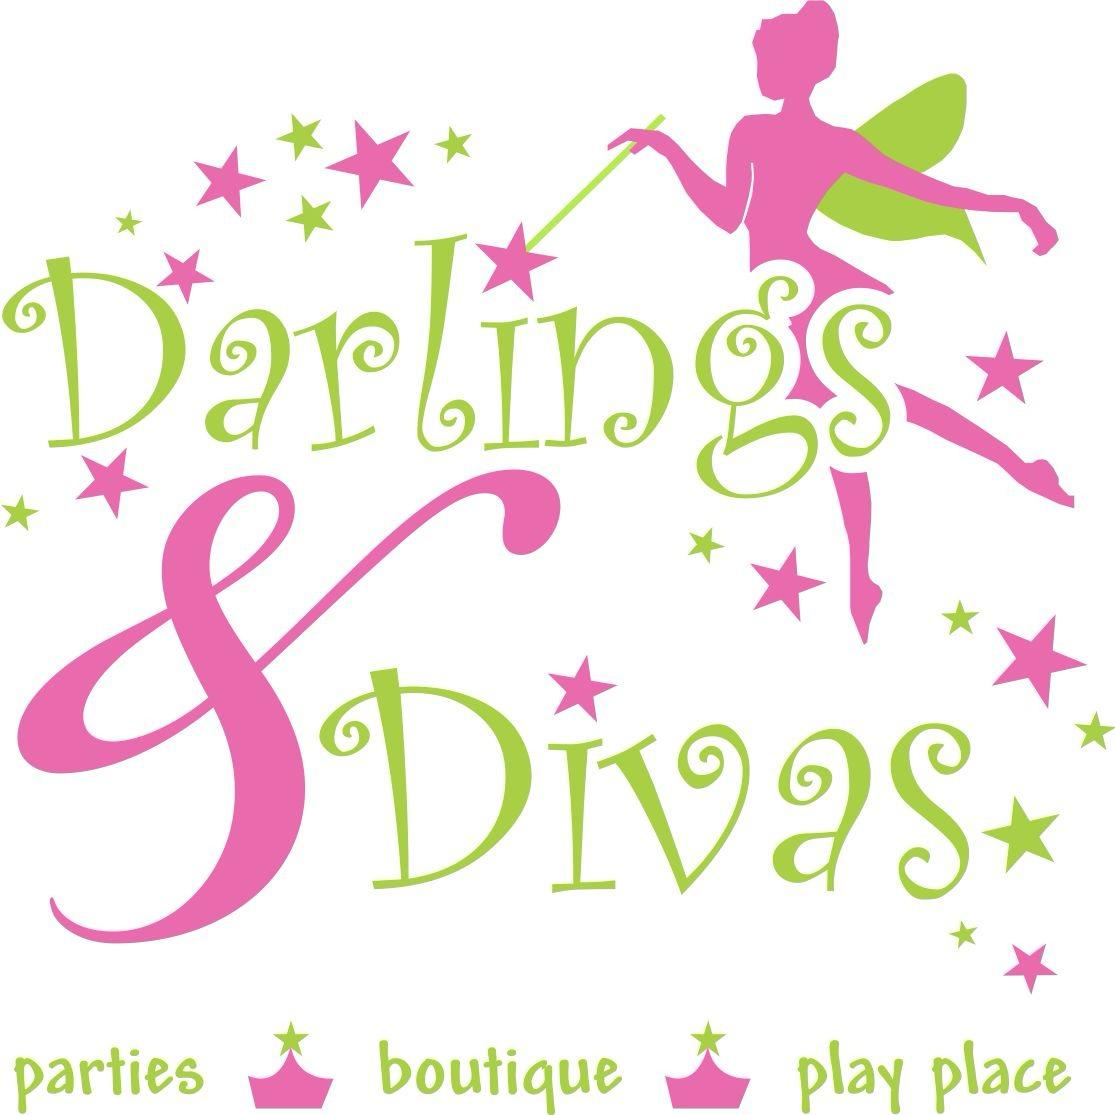 Darlings & Divas - Amityville, NY - Party & Event Planning